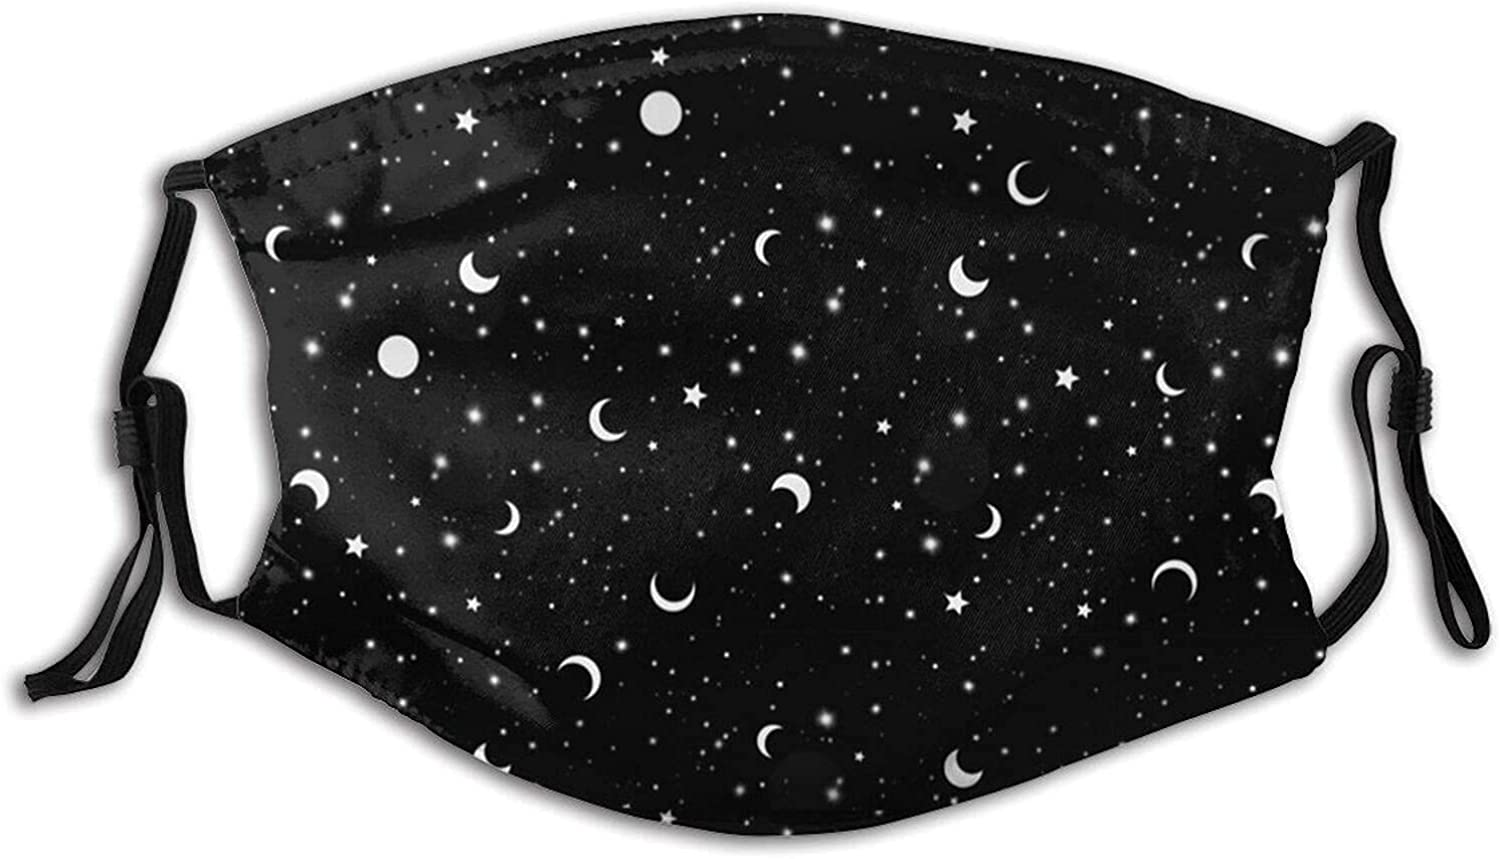 After We Die Moon Face Mask Scarf, Washable Reusable Adult Mask Balaclava with 2 Filters, for Men & Women Outdoor